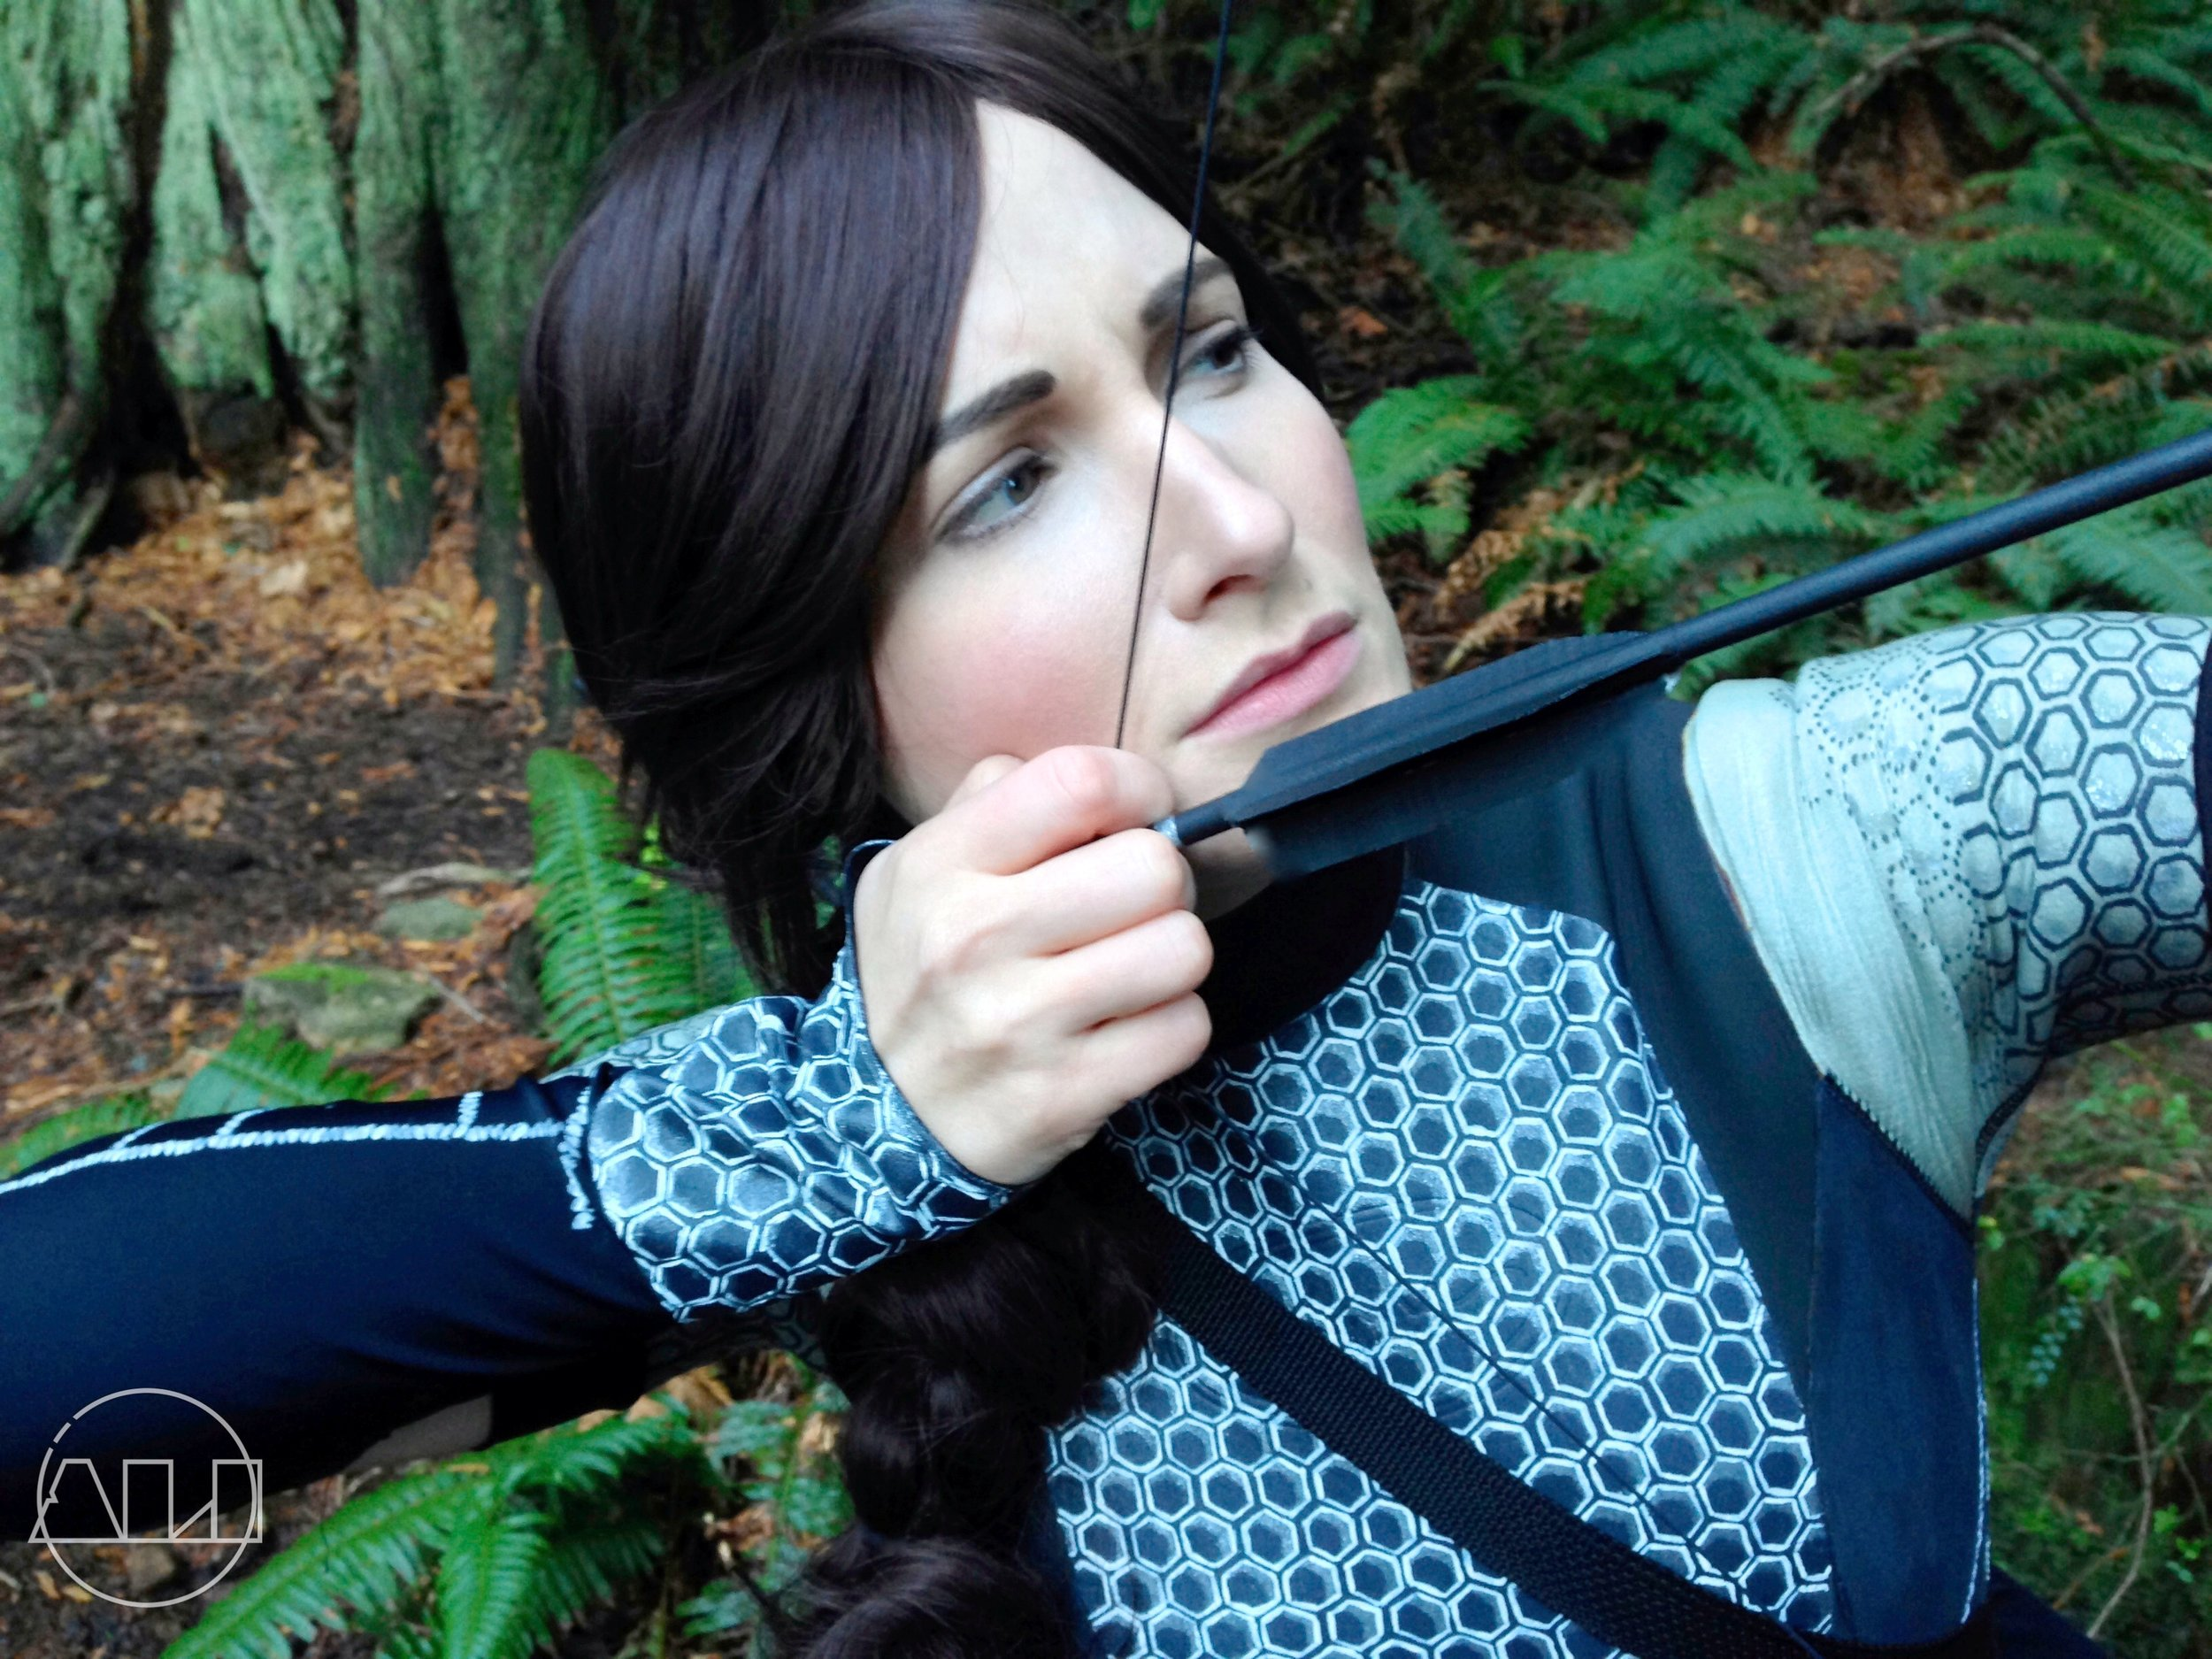 ÁLI as Katniss - Up close aim.JPG